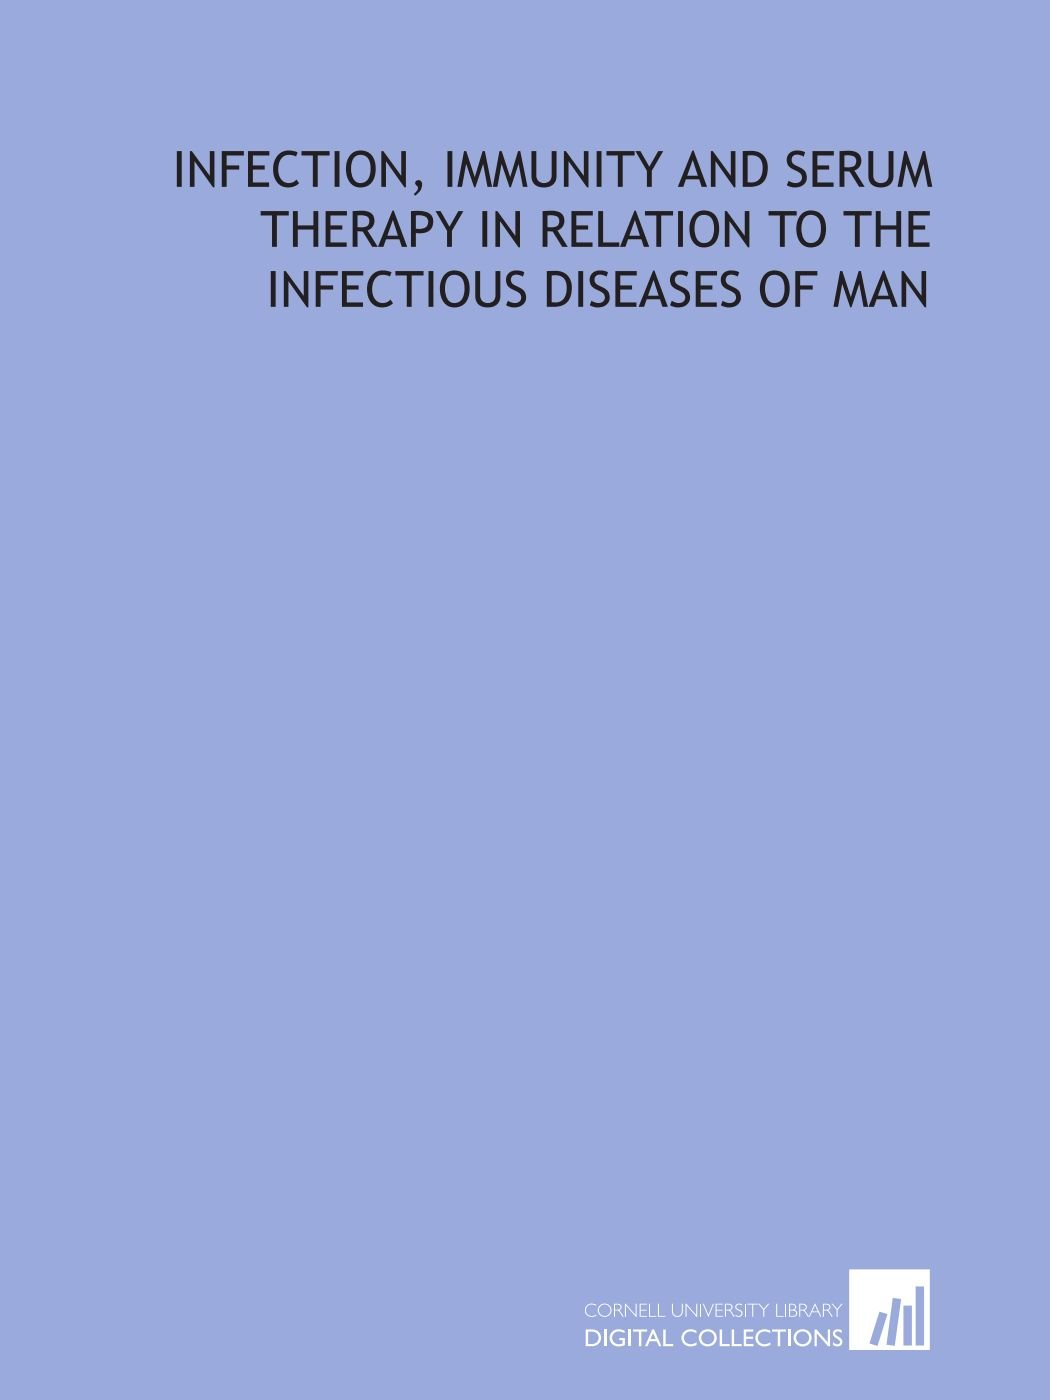 Download Infection, immunity and serum therapy in relation to the infectious diseases of man PDF